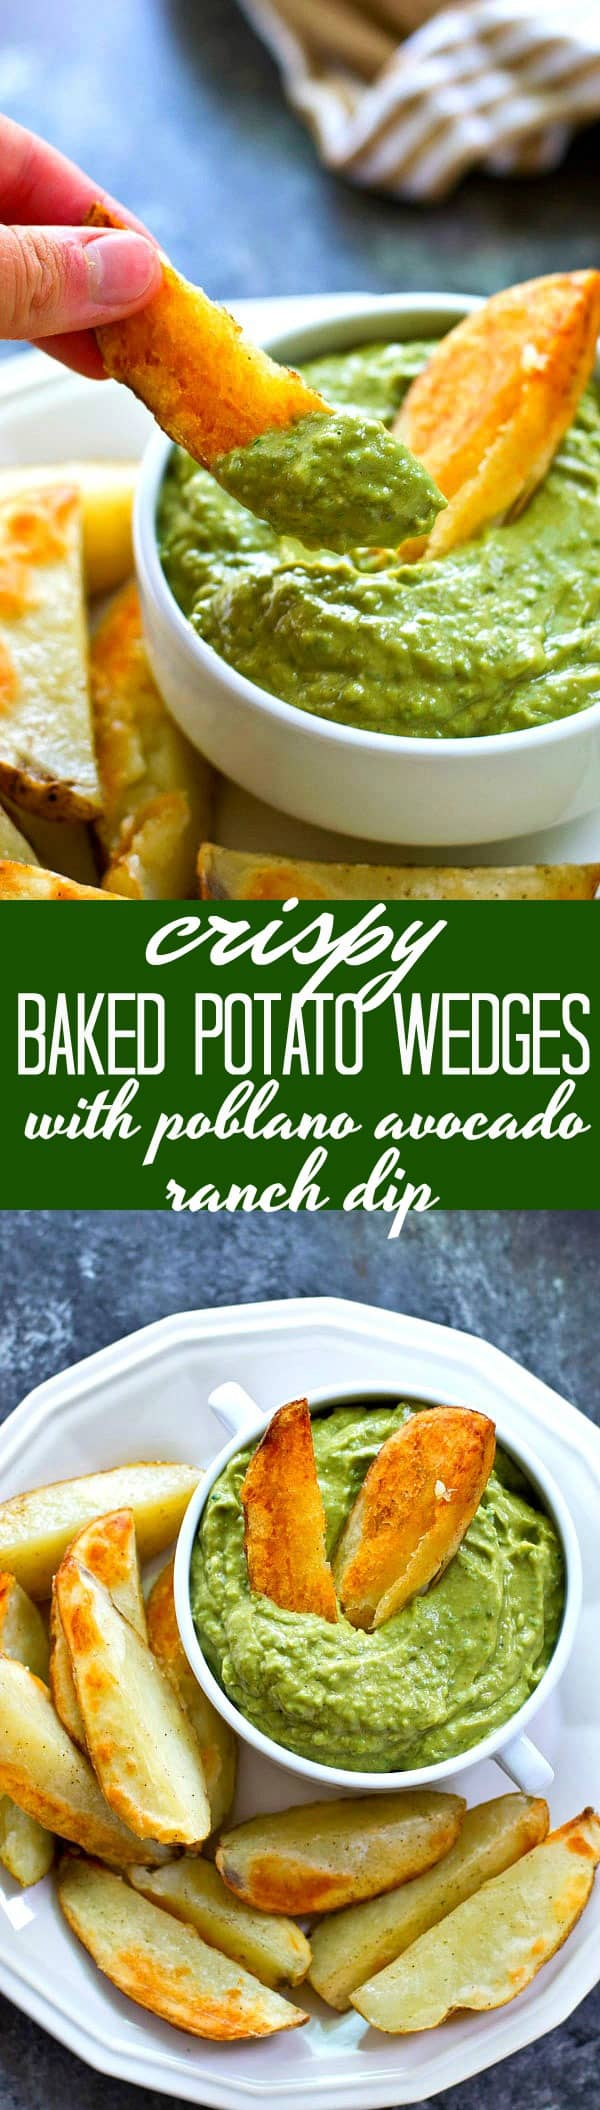 These crispiest-EVER baked potato wedges only need FIVE ingredients and are so easy to throw together! They're ridiculously good dipped in a spicy poblano avocado ranch dip.